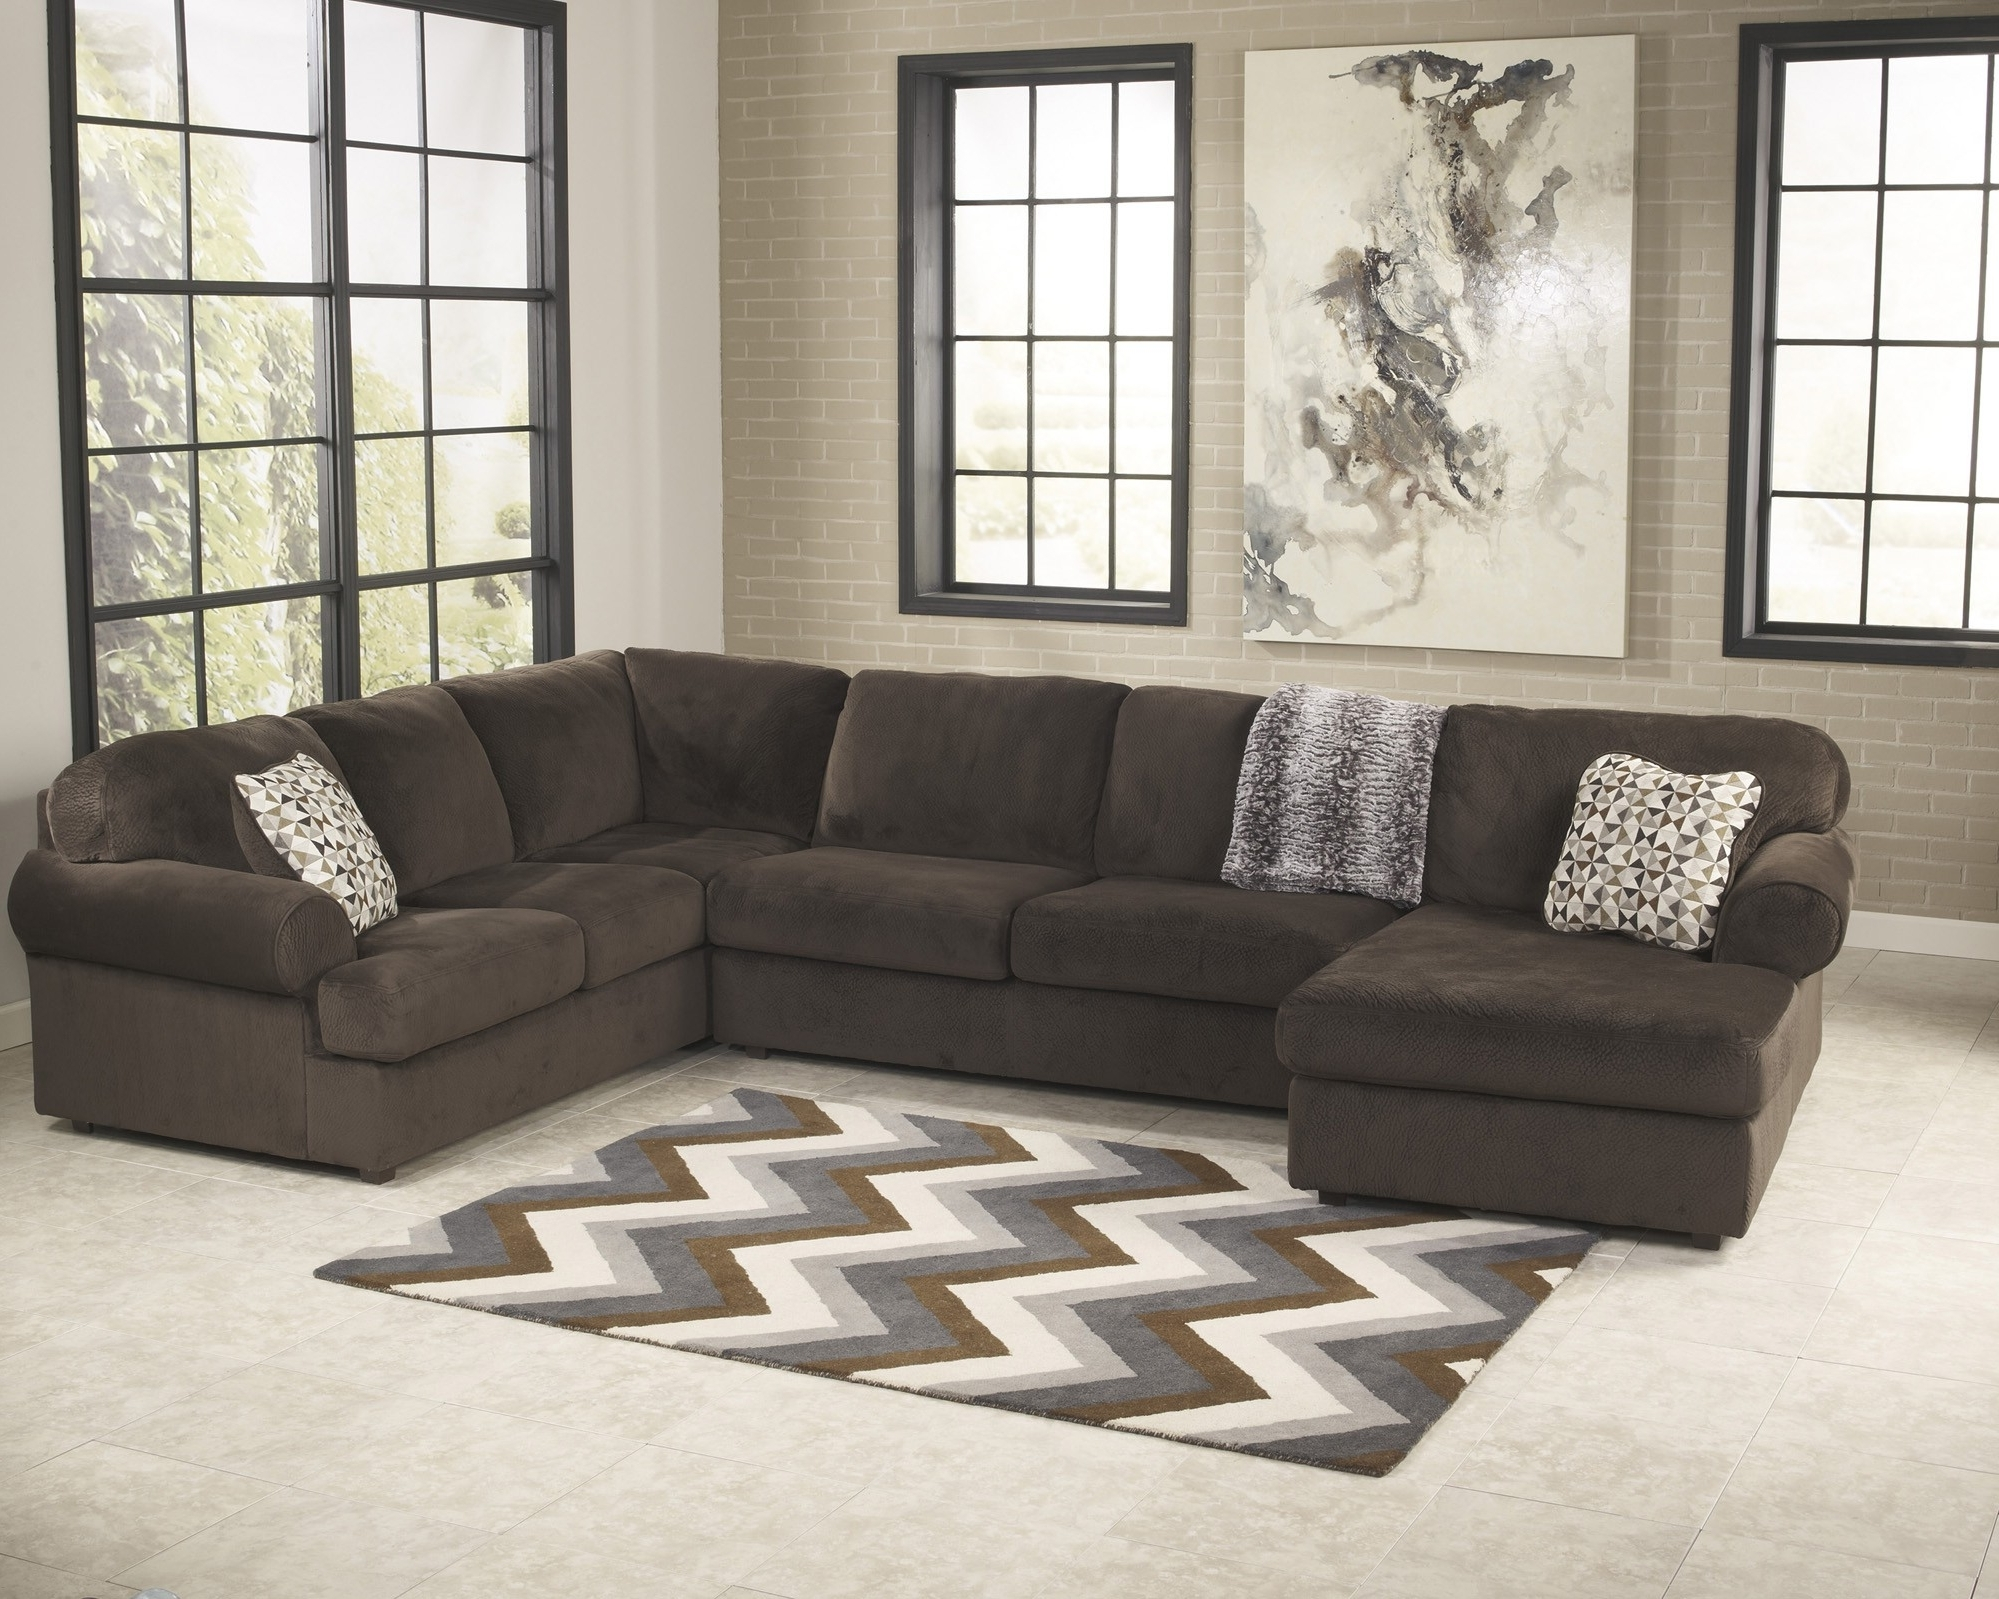 Jessa Place Chocolate 3 Piece Sectional Sofa For $ (View 4 of 20)